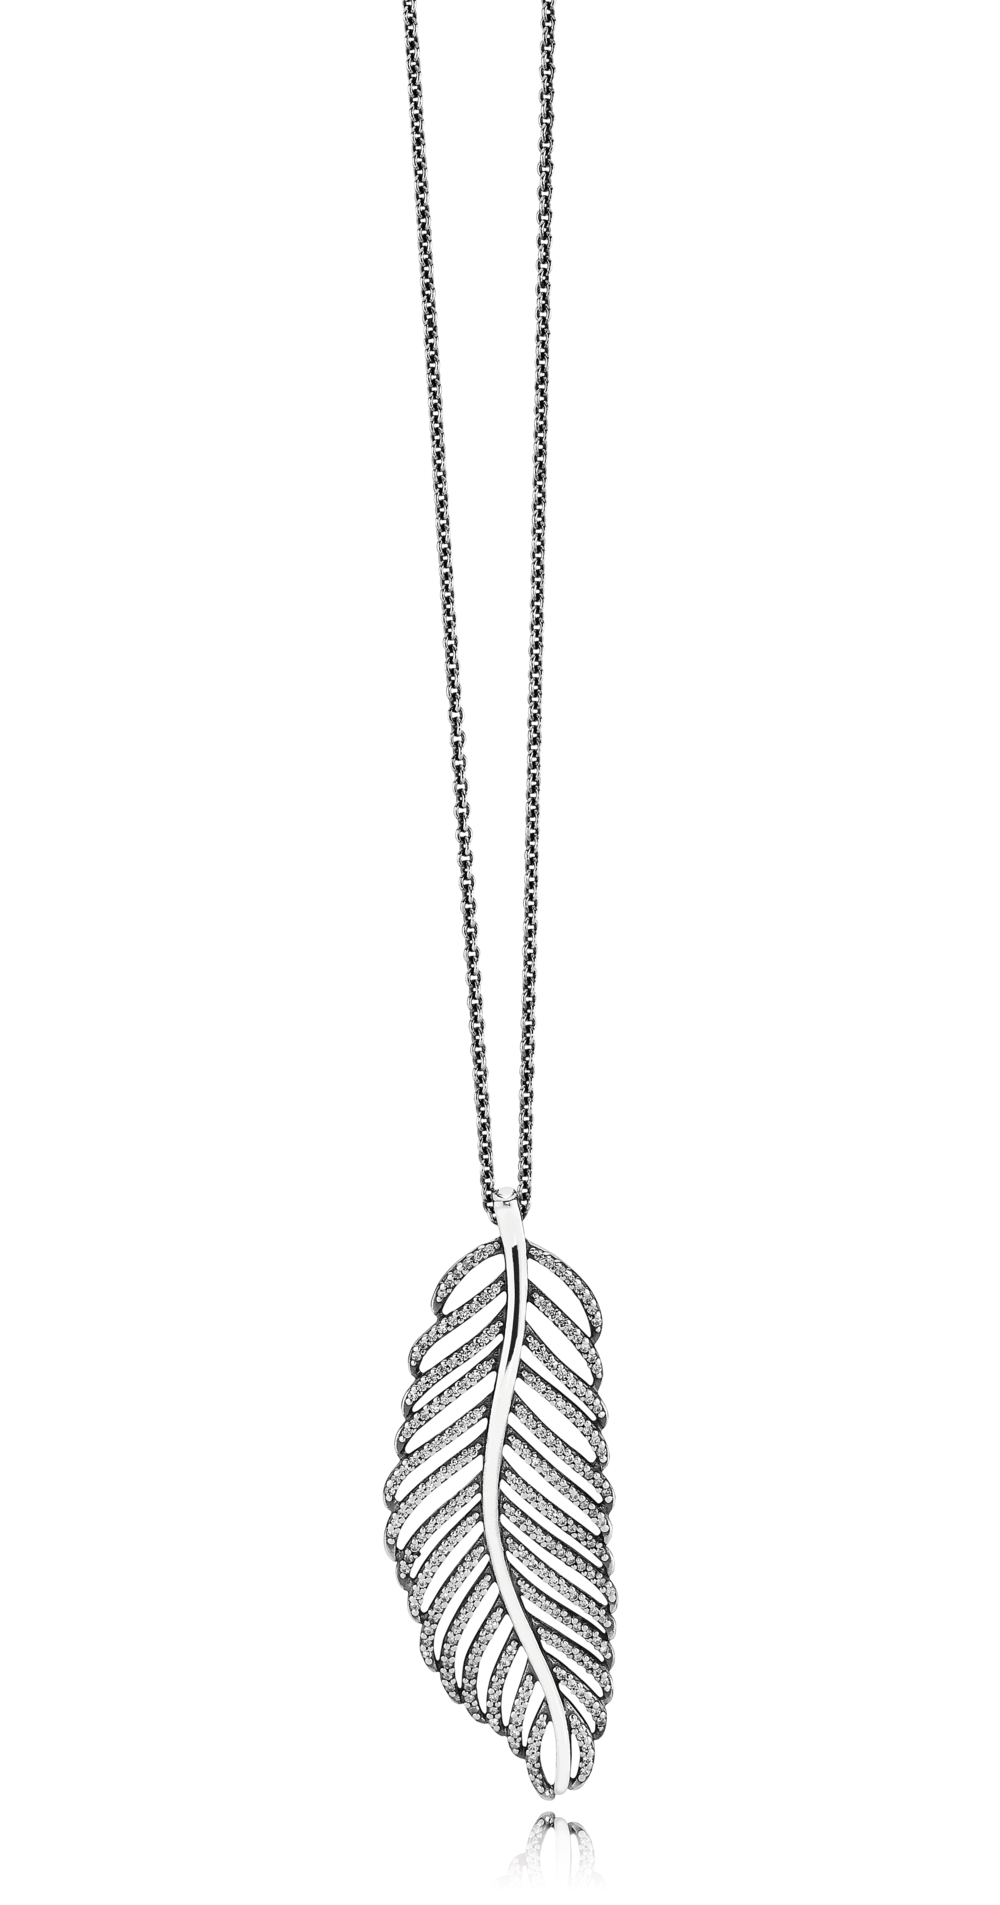 50be1bf02 >>>Pandora Jewelry 60% OFF! >>>Visit>> This statement feather pendant is  extremely stunning. Wear it on a sterling silver chain to complete your  look.